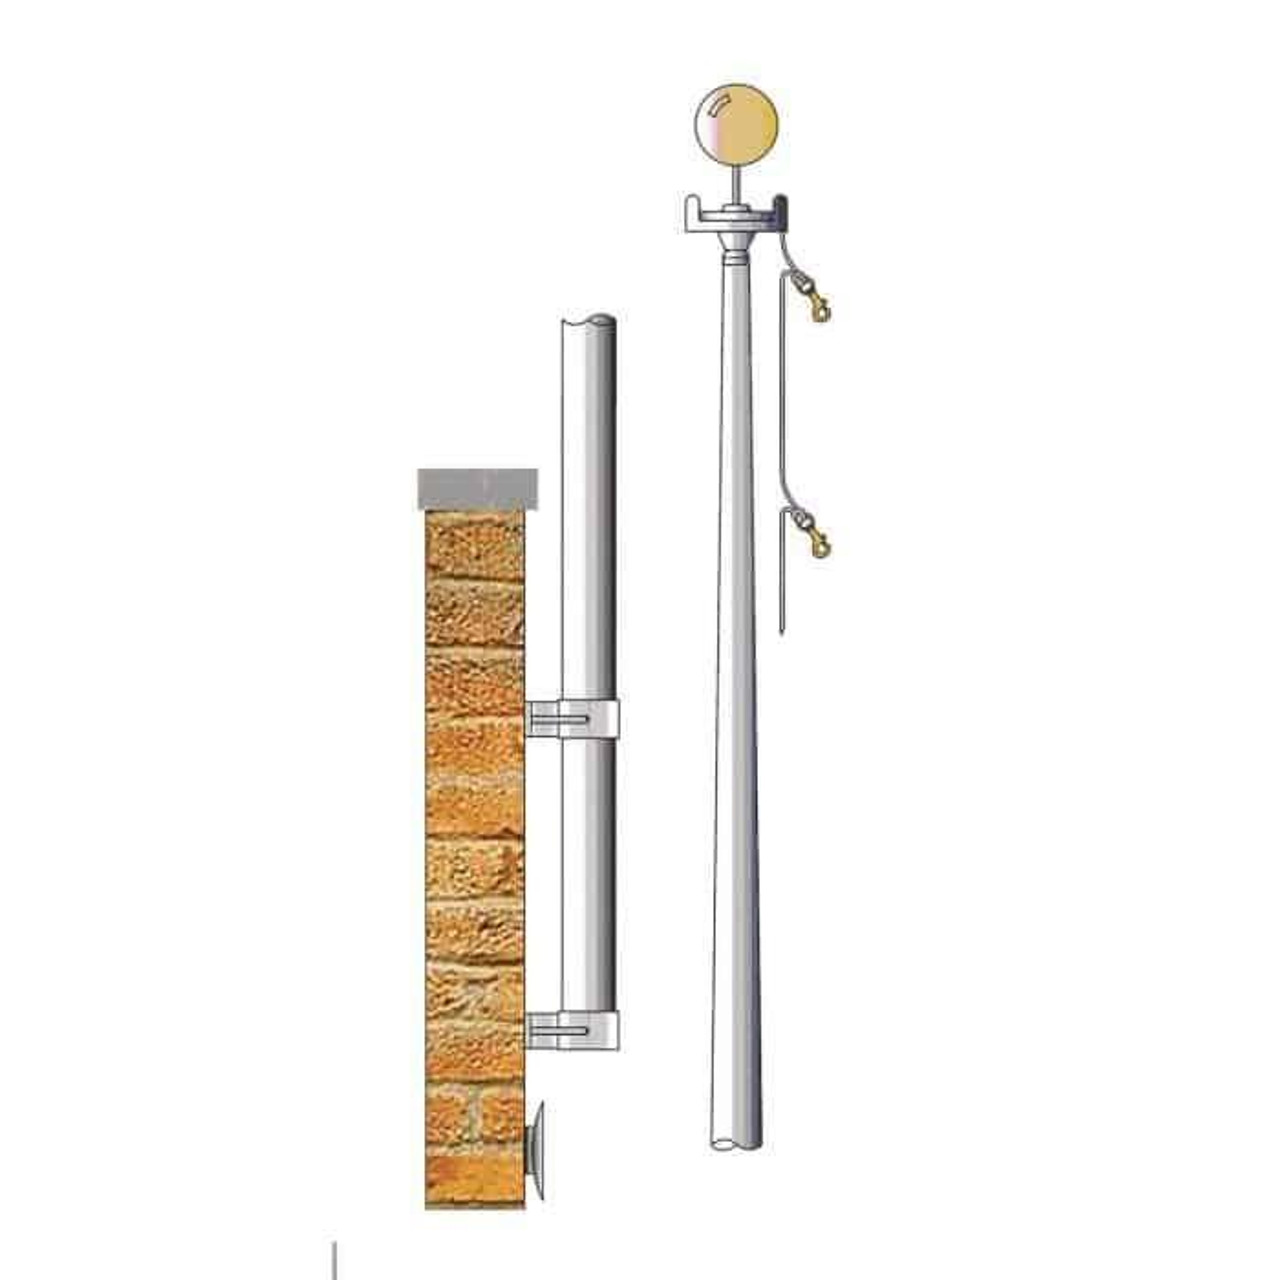 25 Vertical Wall Mounted Flagpole LVW25